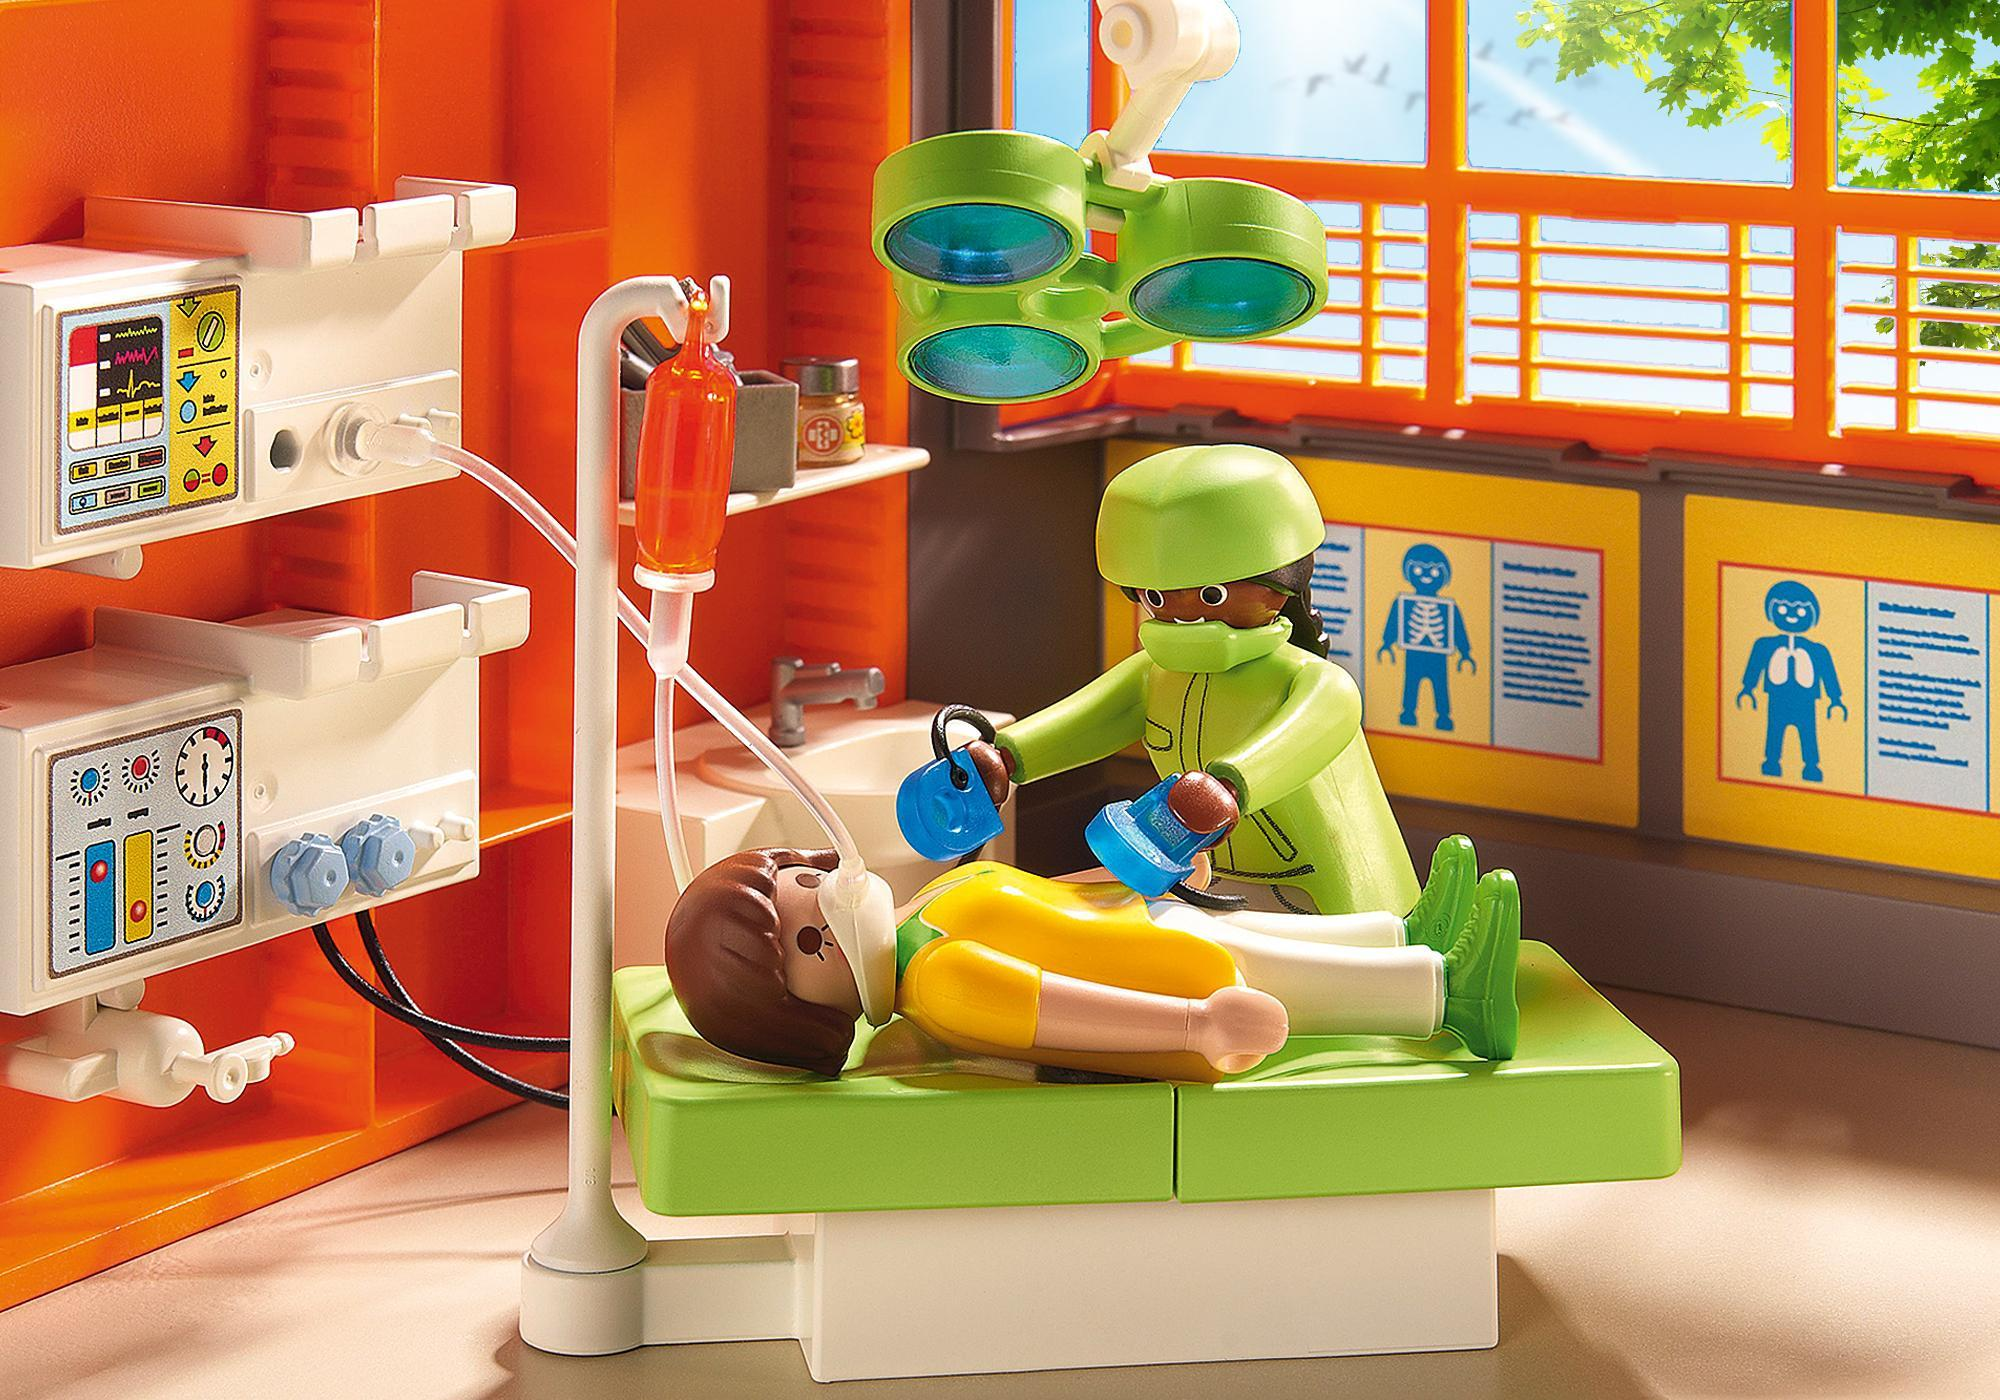 http://media.playmobil.com/i/playmobil/6657_product_extra1